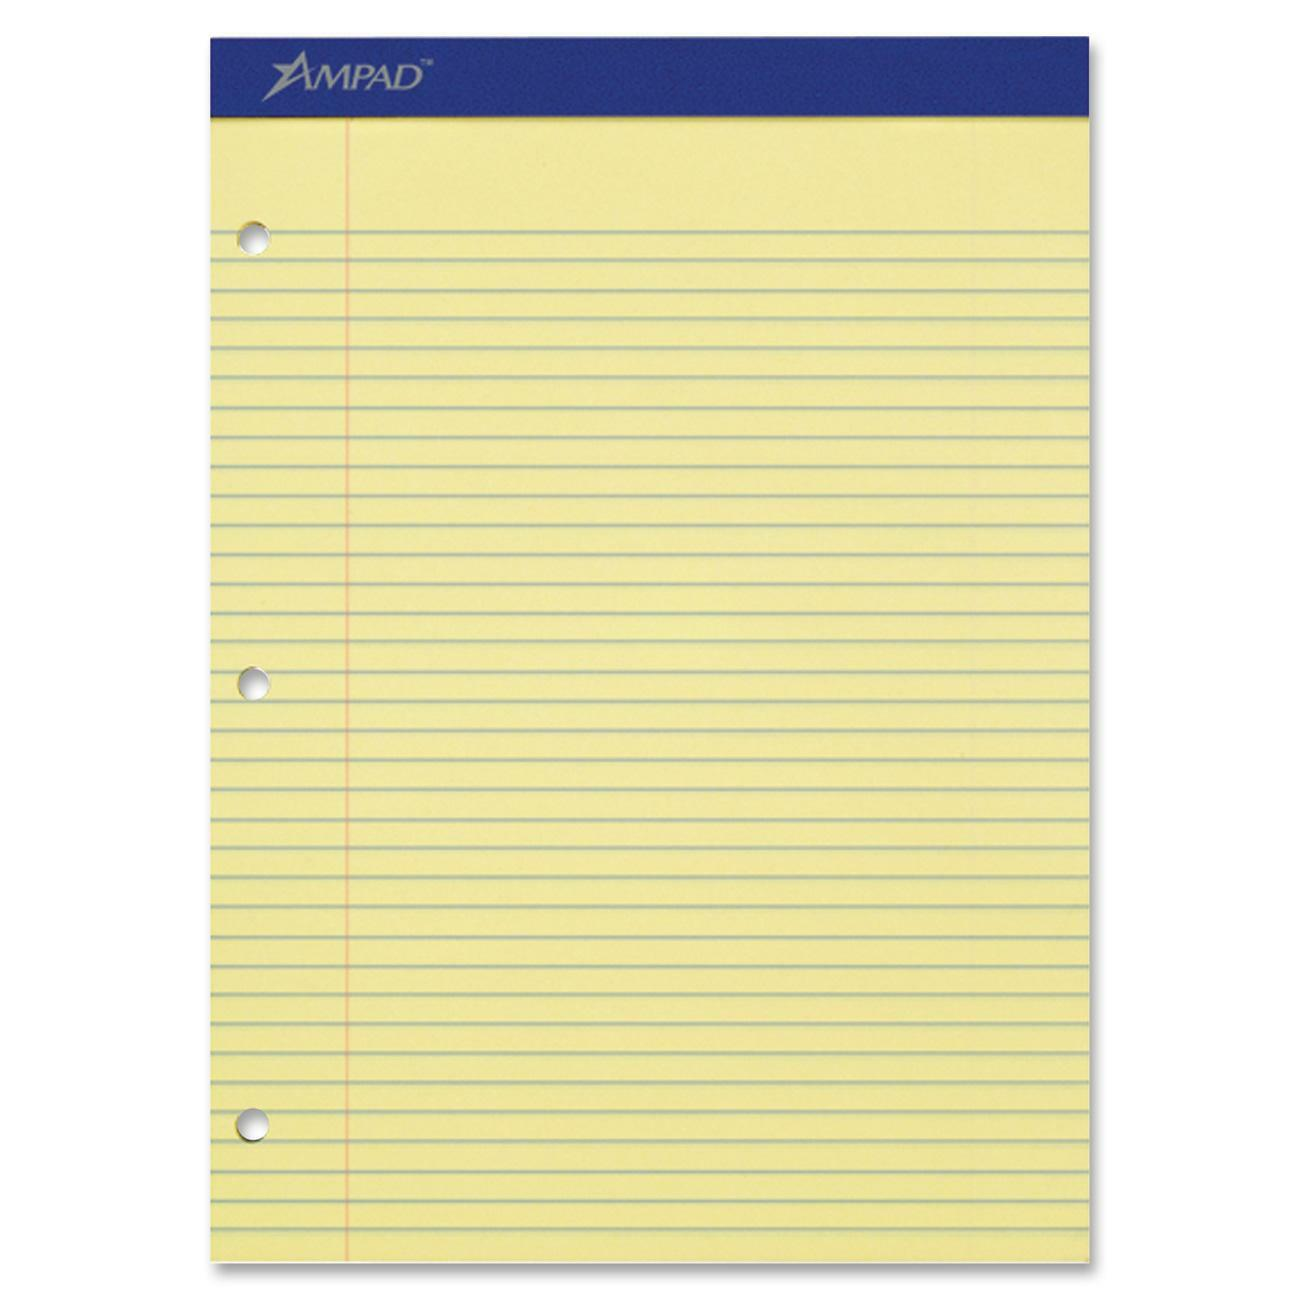 kamloops office systems office supplies paper pads